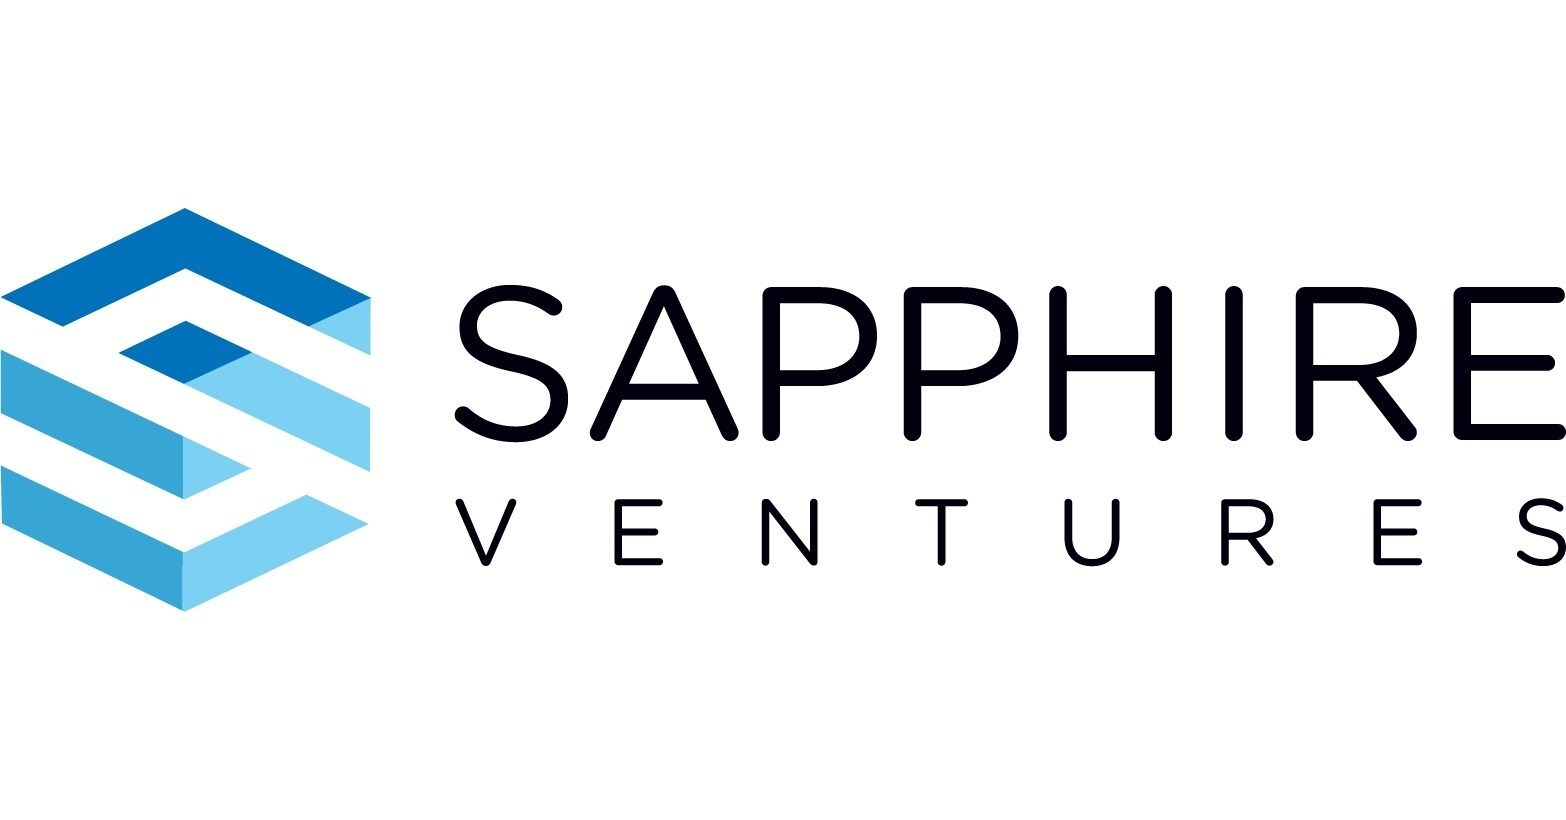 The words Sapphire Ventures and their logo which is a stylized, white S among blue shapes so that it looks like a cube.